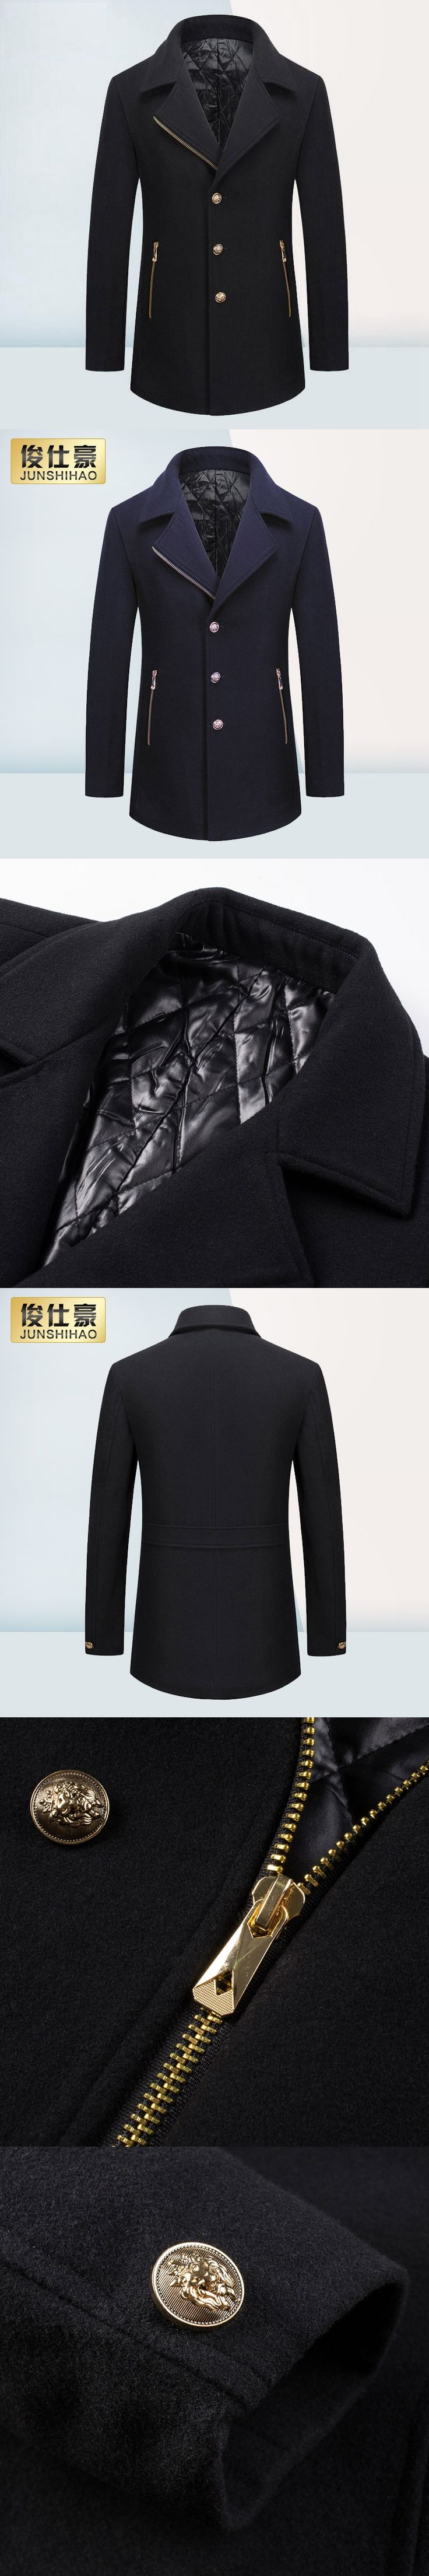 Autumn Winter Men's Wool Jackets High Quality Single-breasted Casual Suit Collar Wool Jacket Men Brand Zipper Coat Plus Size 3XL